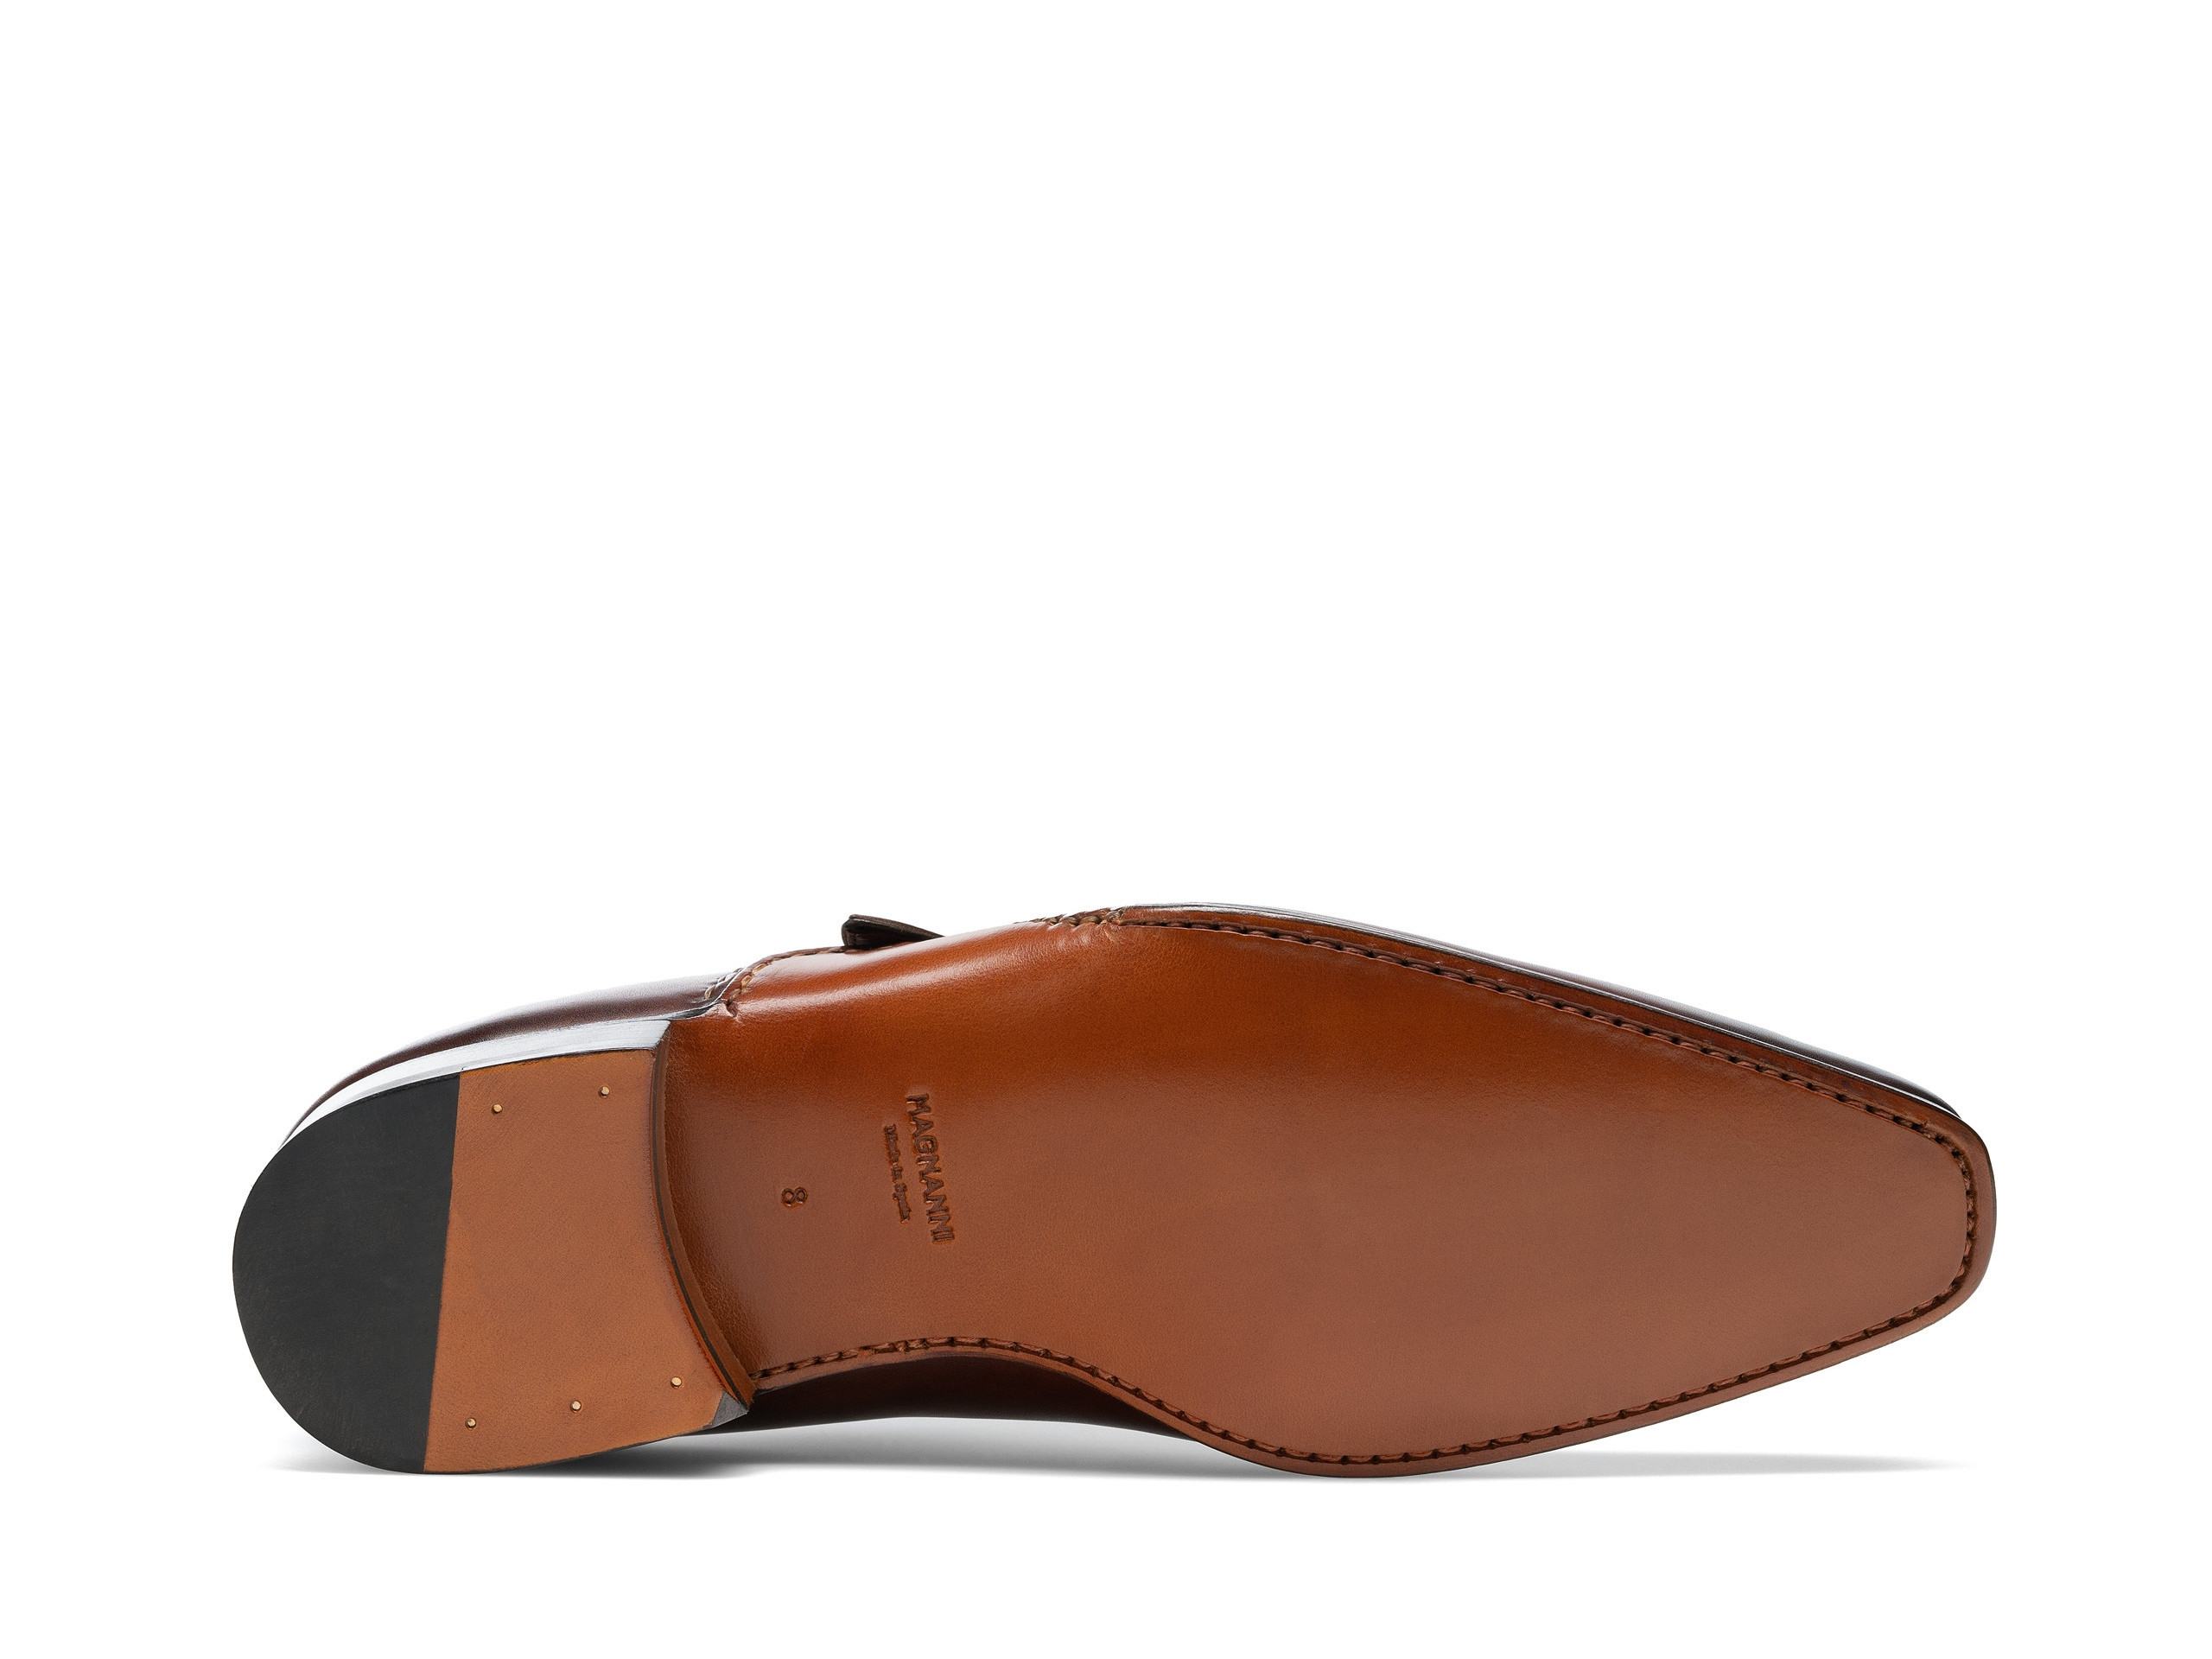 The sole of the Meira